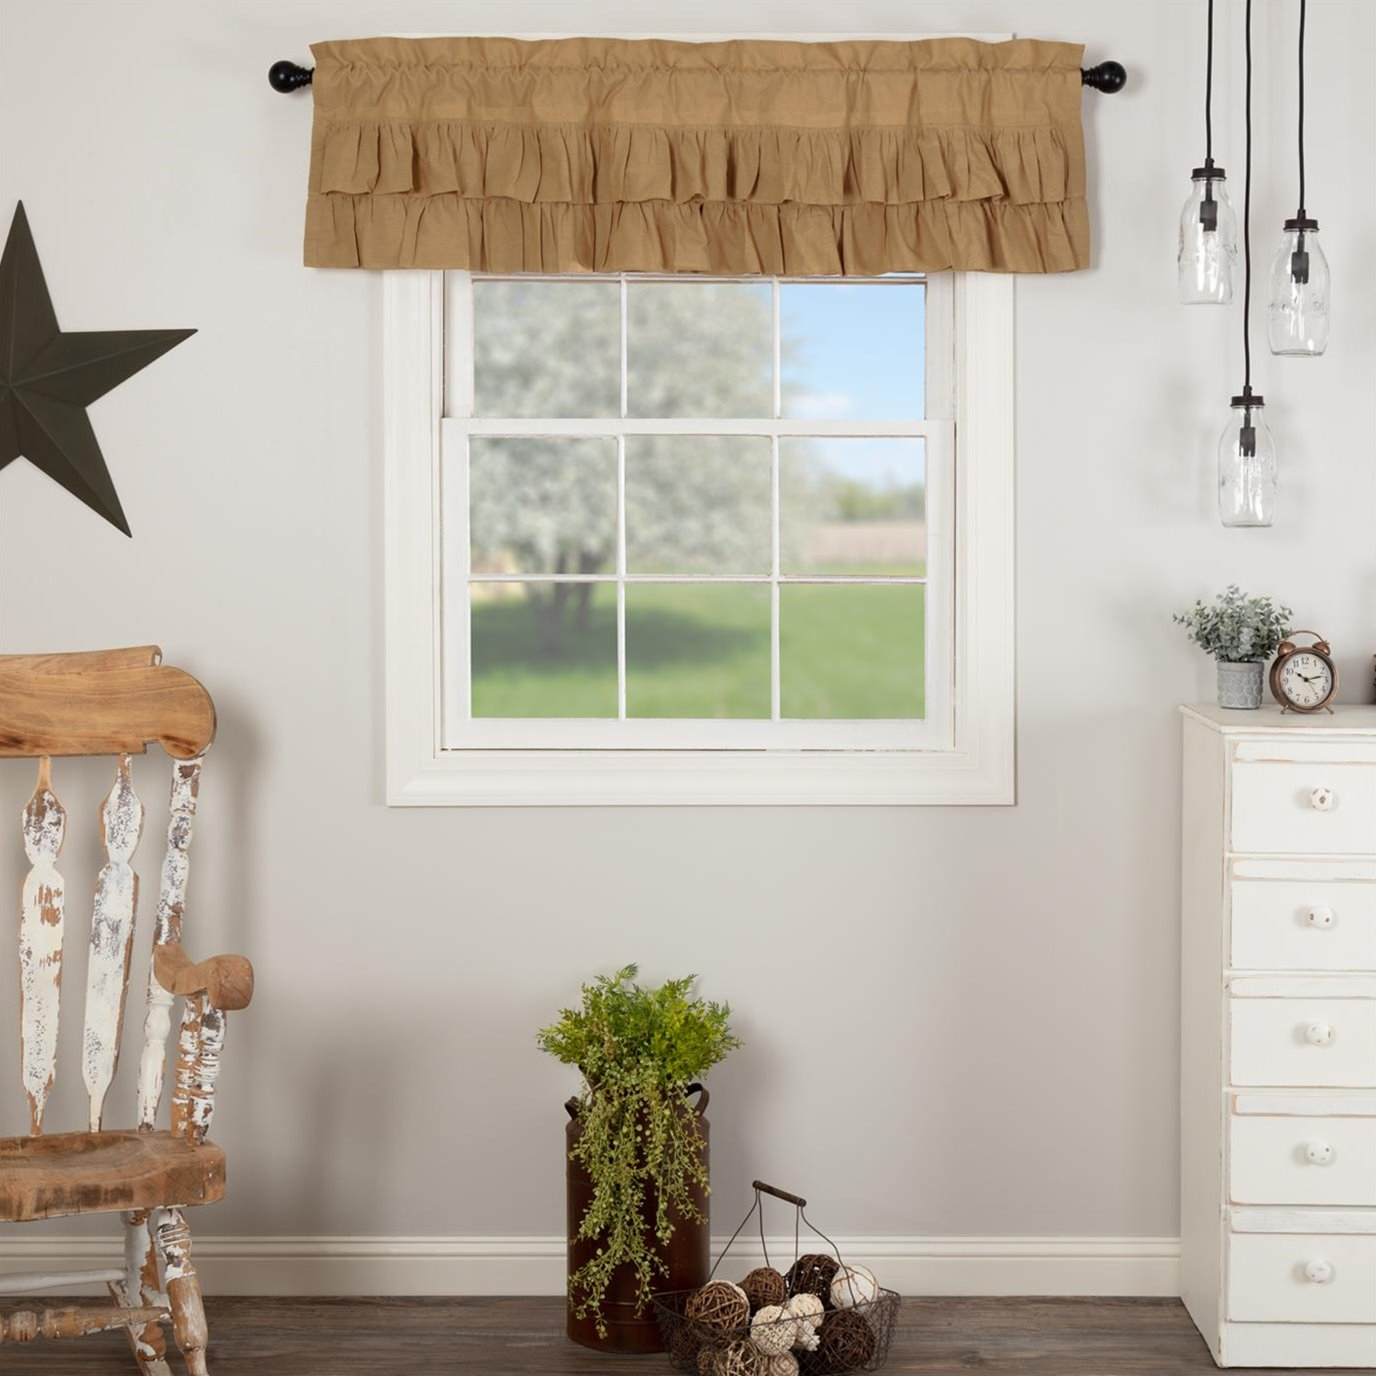 Simple Life Flax Khaki Ruffled Valance 16x60